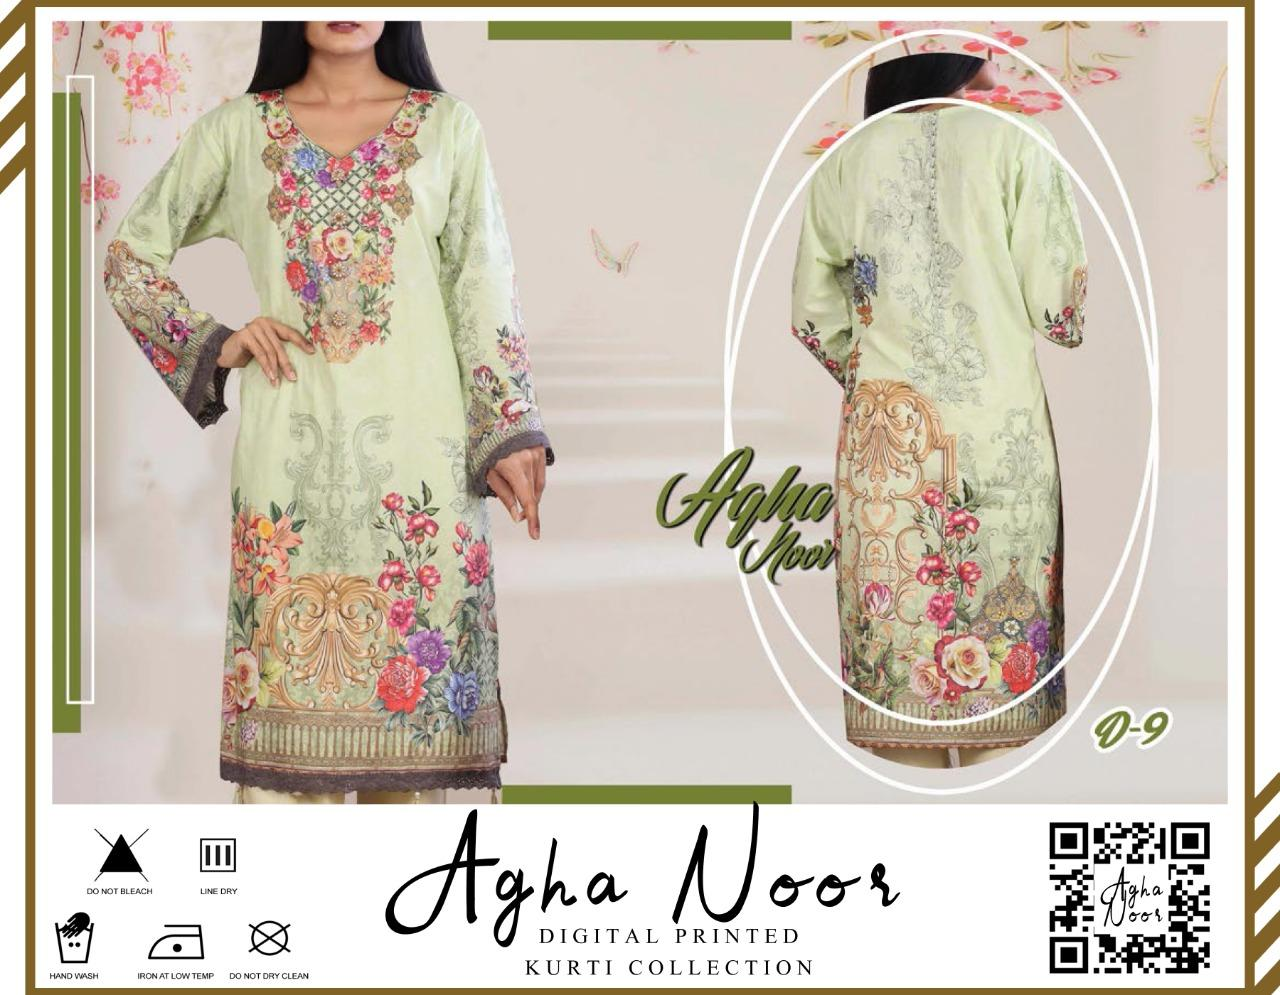 Agha Noor Digital Printed Kurti Collection Buy Online At Best Prices In Pakistan Daraz Pk Agha noor powder embroidery pattern kurta set powder blue. agha noor digital printed kurti collection